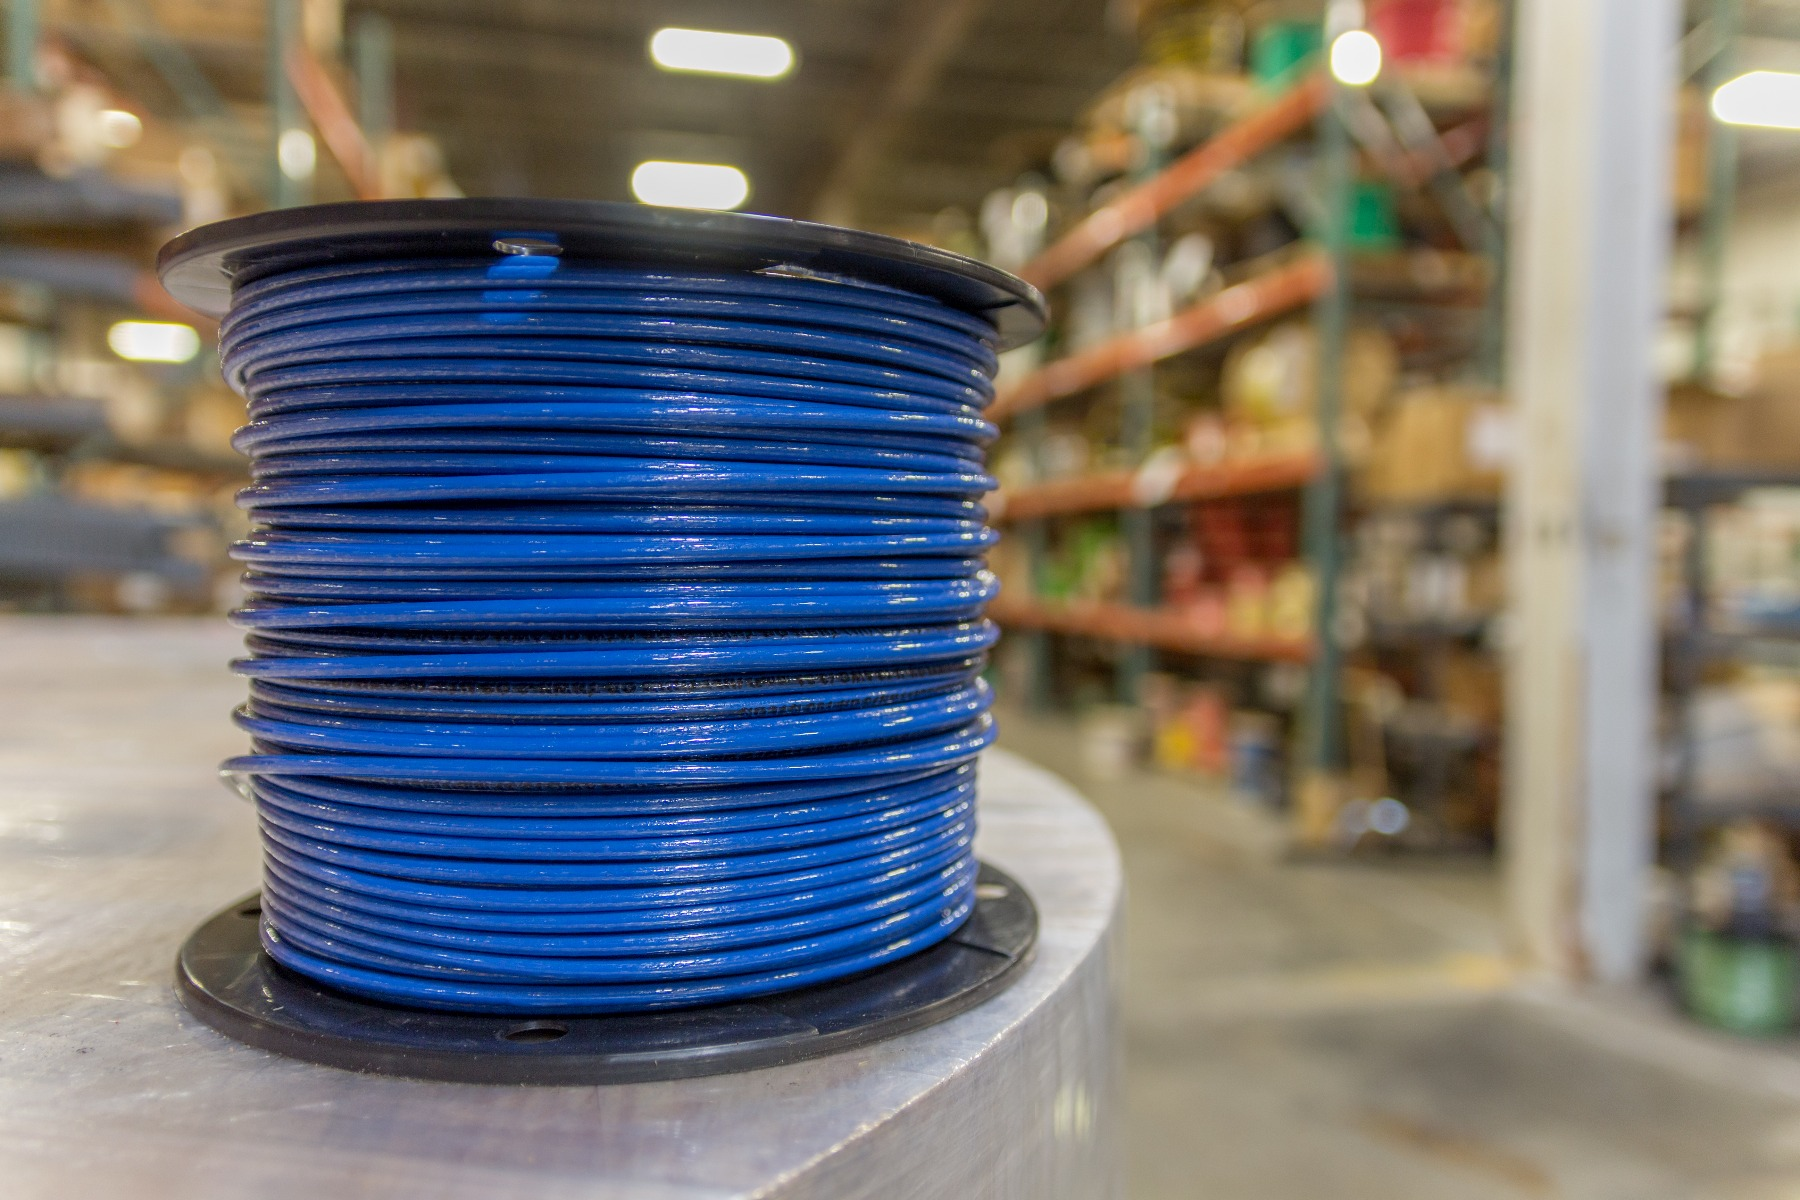 Blue reel of wire